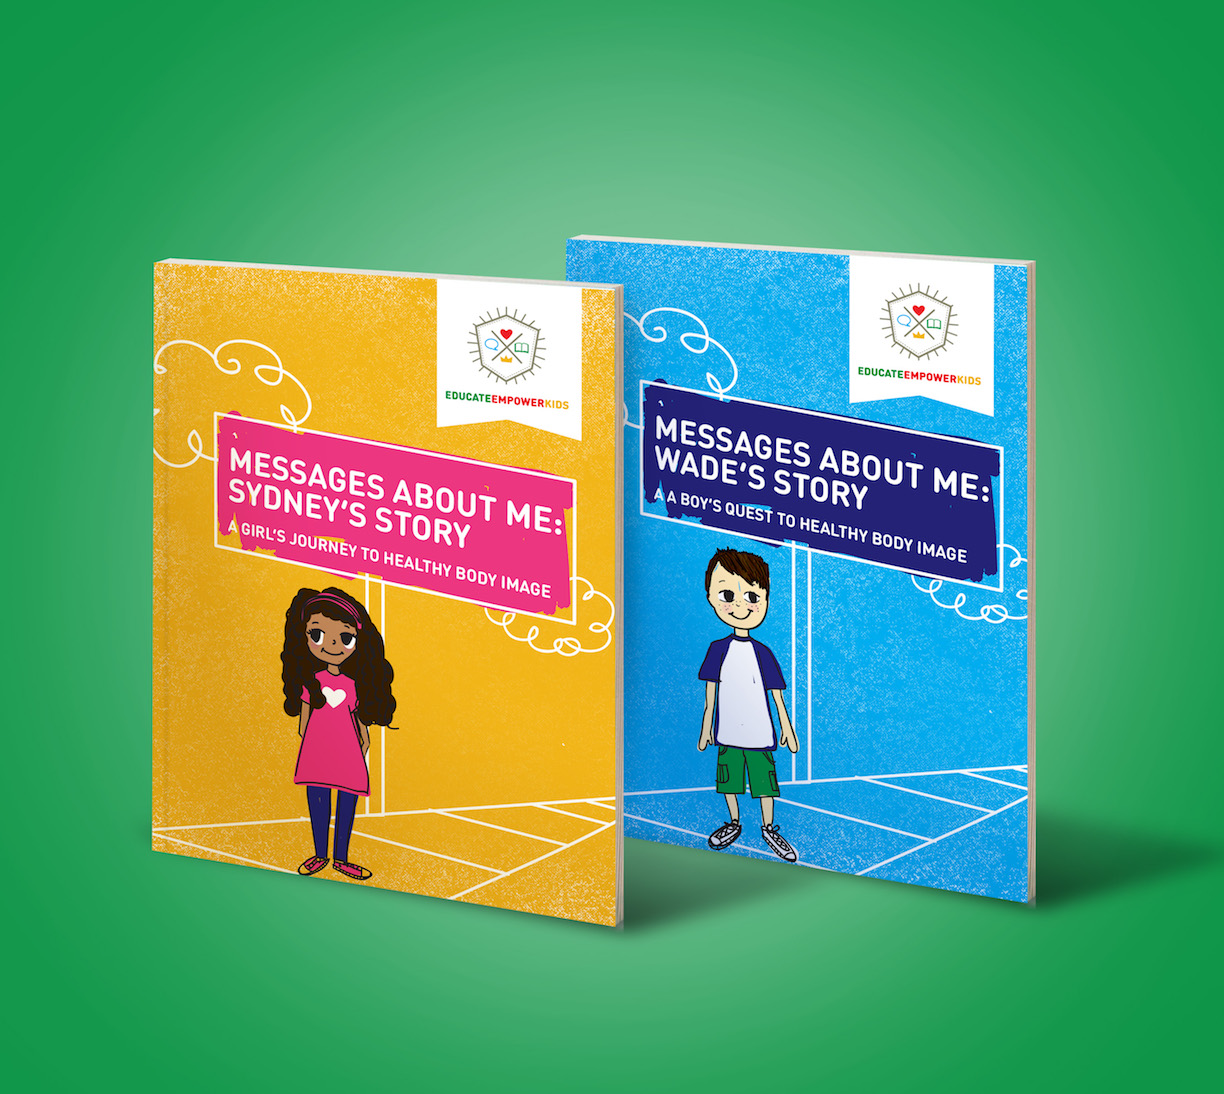 Messages About Me: New Children's Books on Healthy Body Image from Educate & Empower Kids